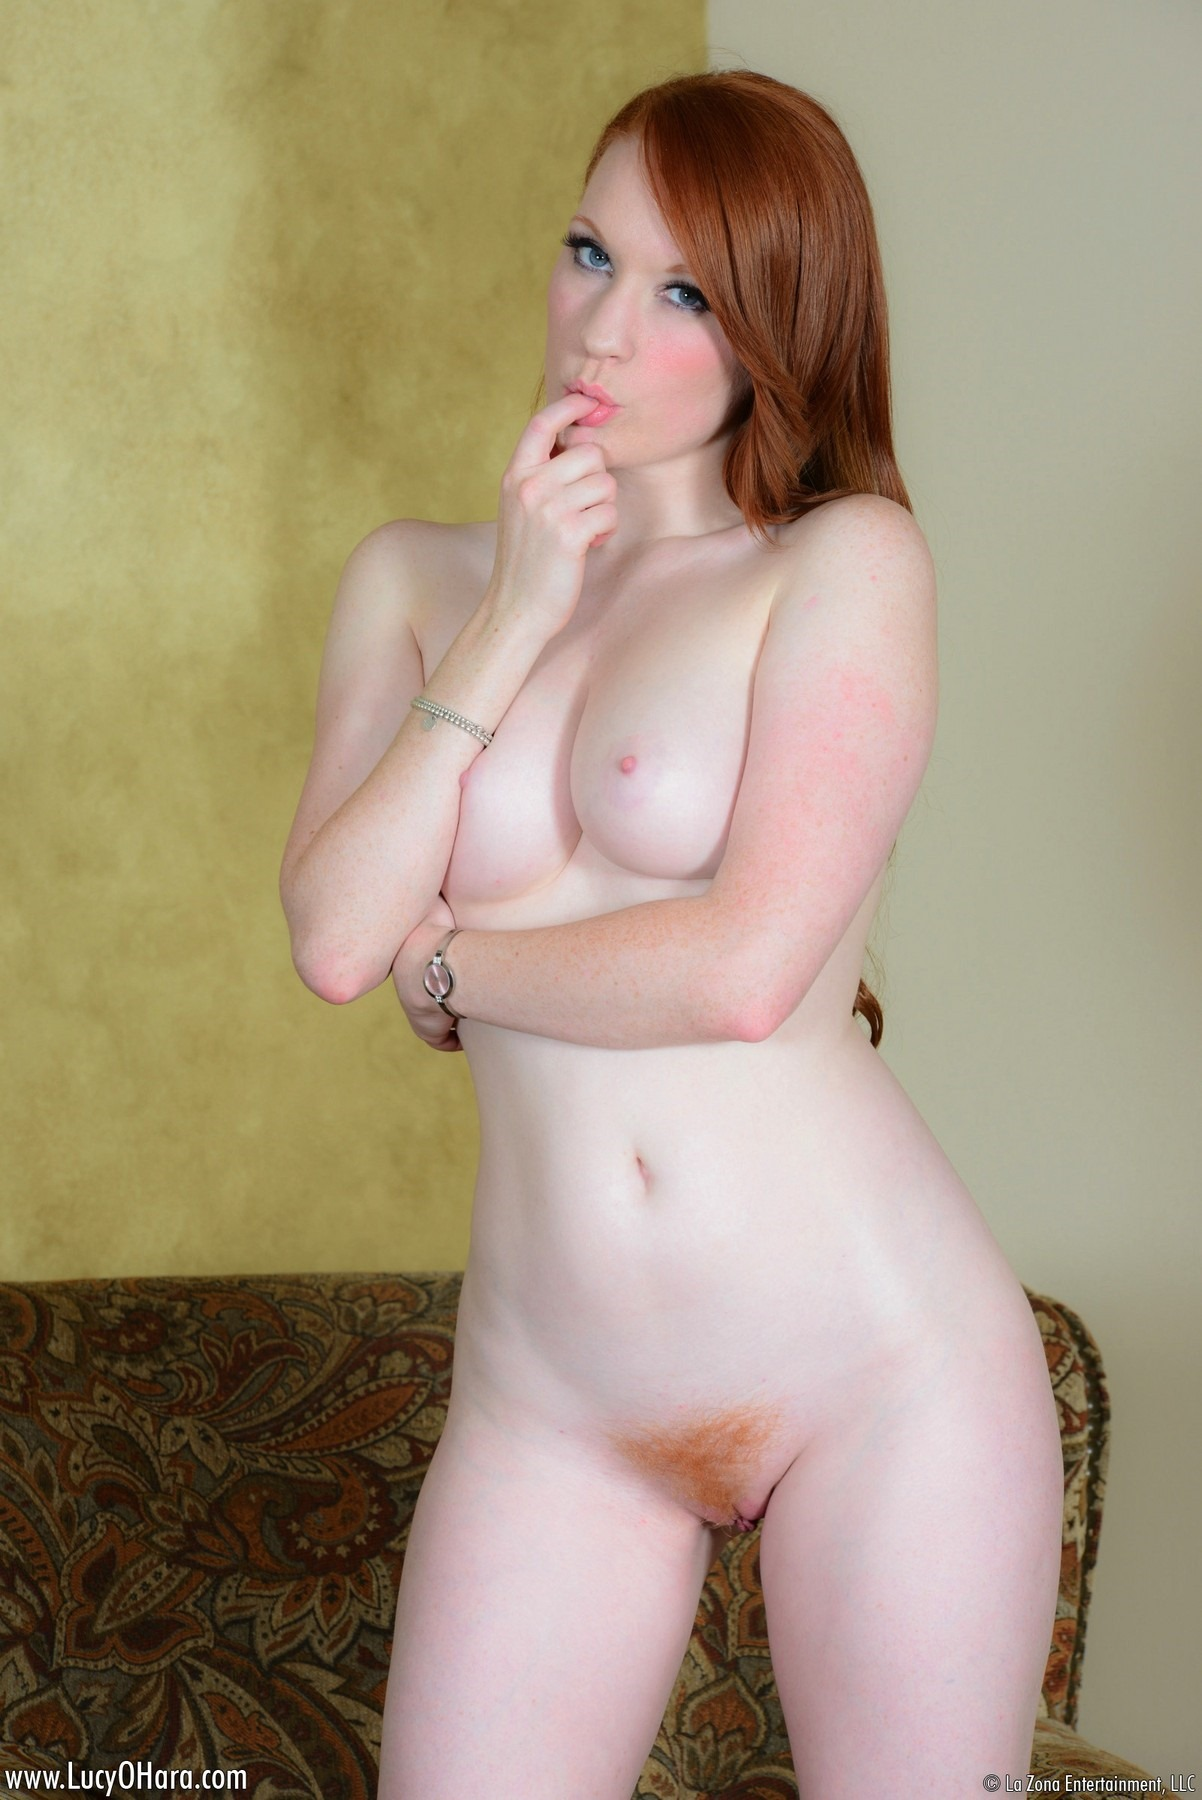 Sexy Redhead Lucy Ohara Upskirt - Pale redhead pussy lucy - New porn